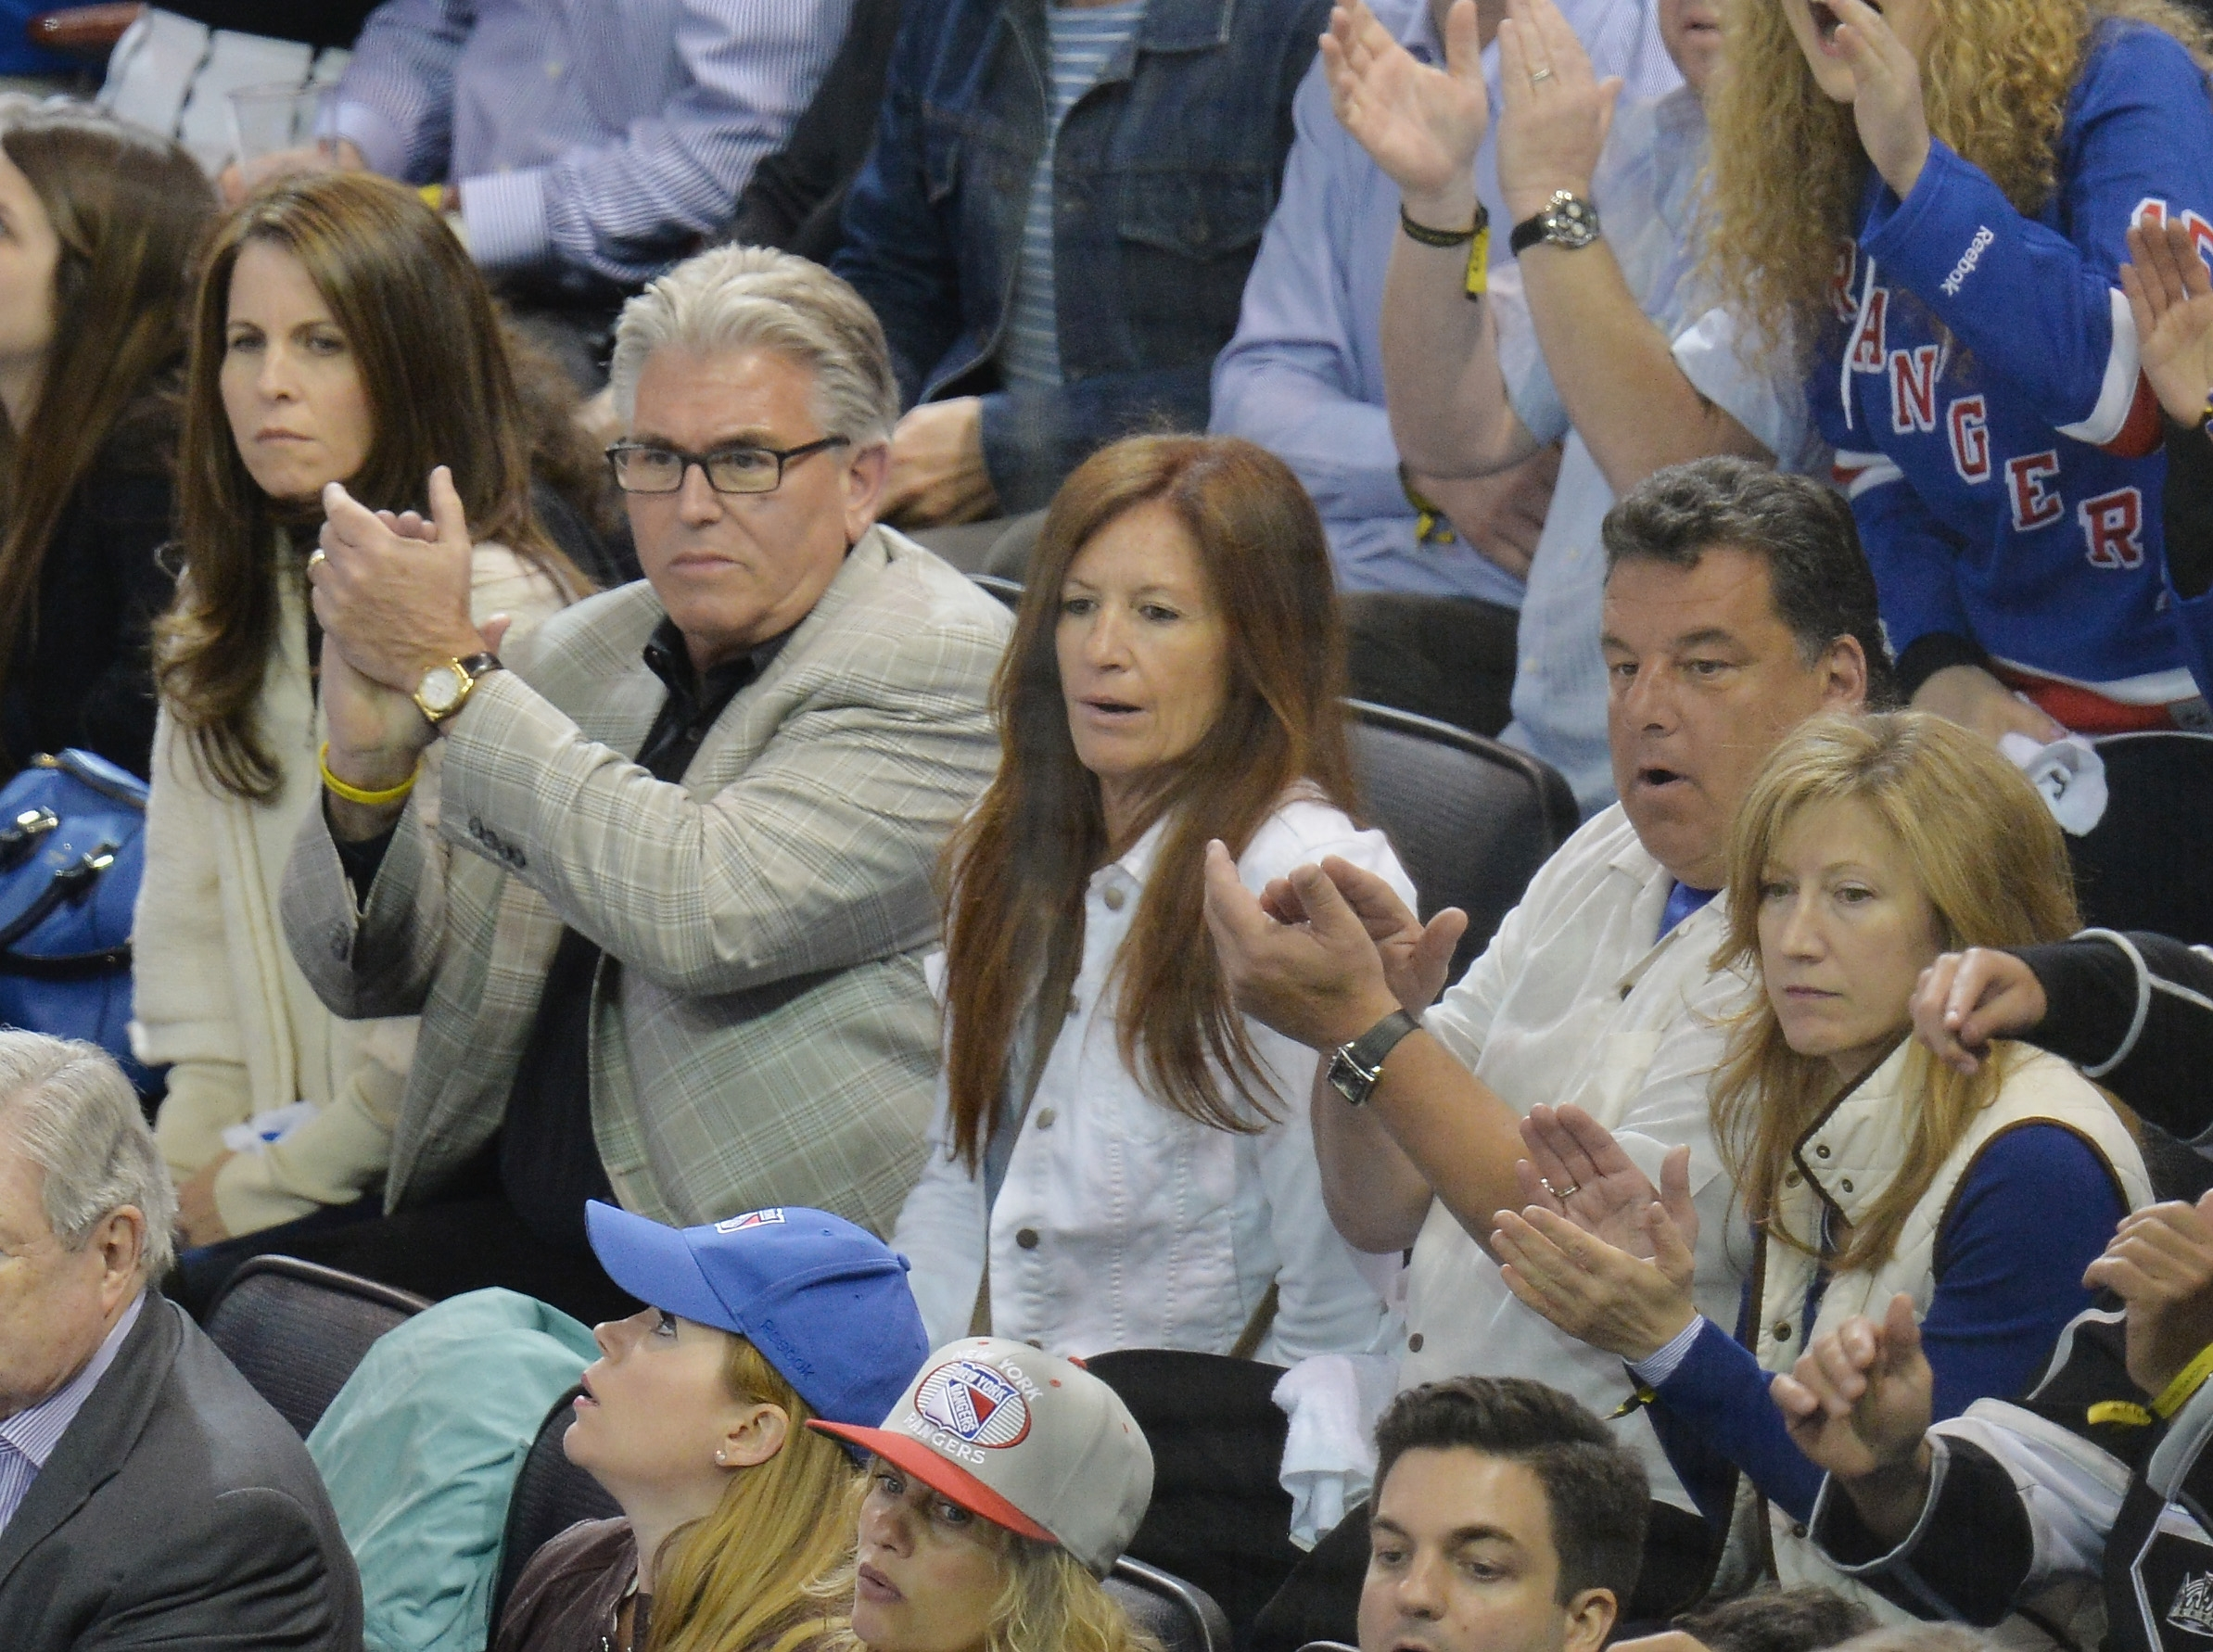 Mike Francesa, pictured at a hockey game in 2014, went on a rant about the Bills.